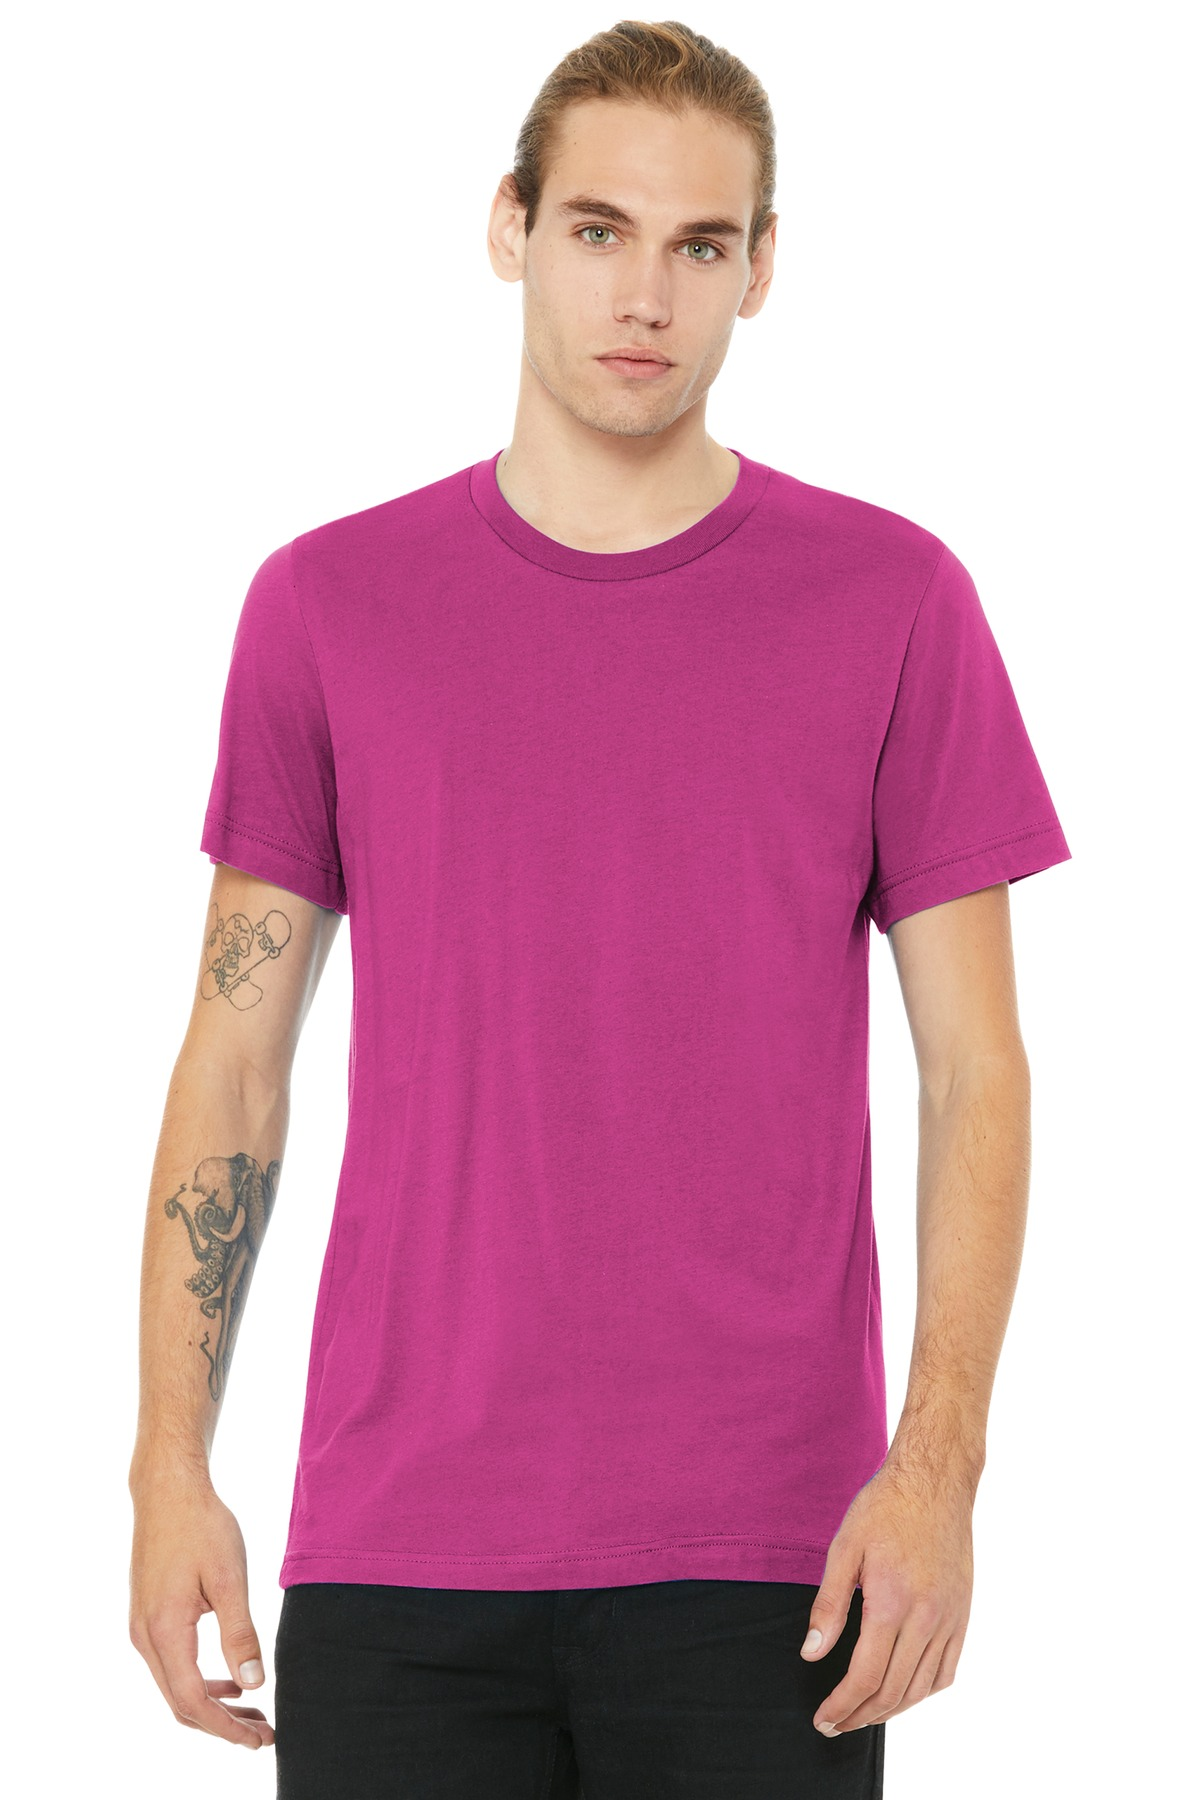 BELLA+CANVAS  ®  Unisex Jersey Short Sleeve Tee. BC3001 - Berry